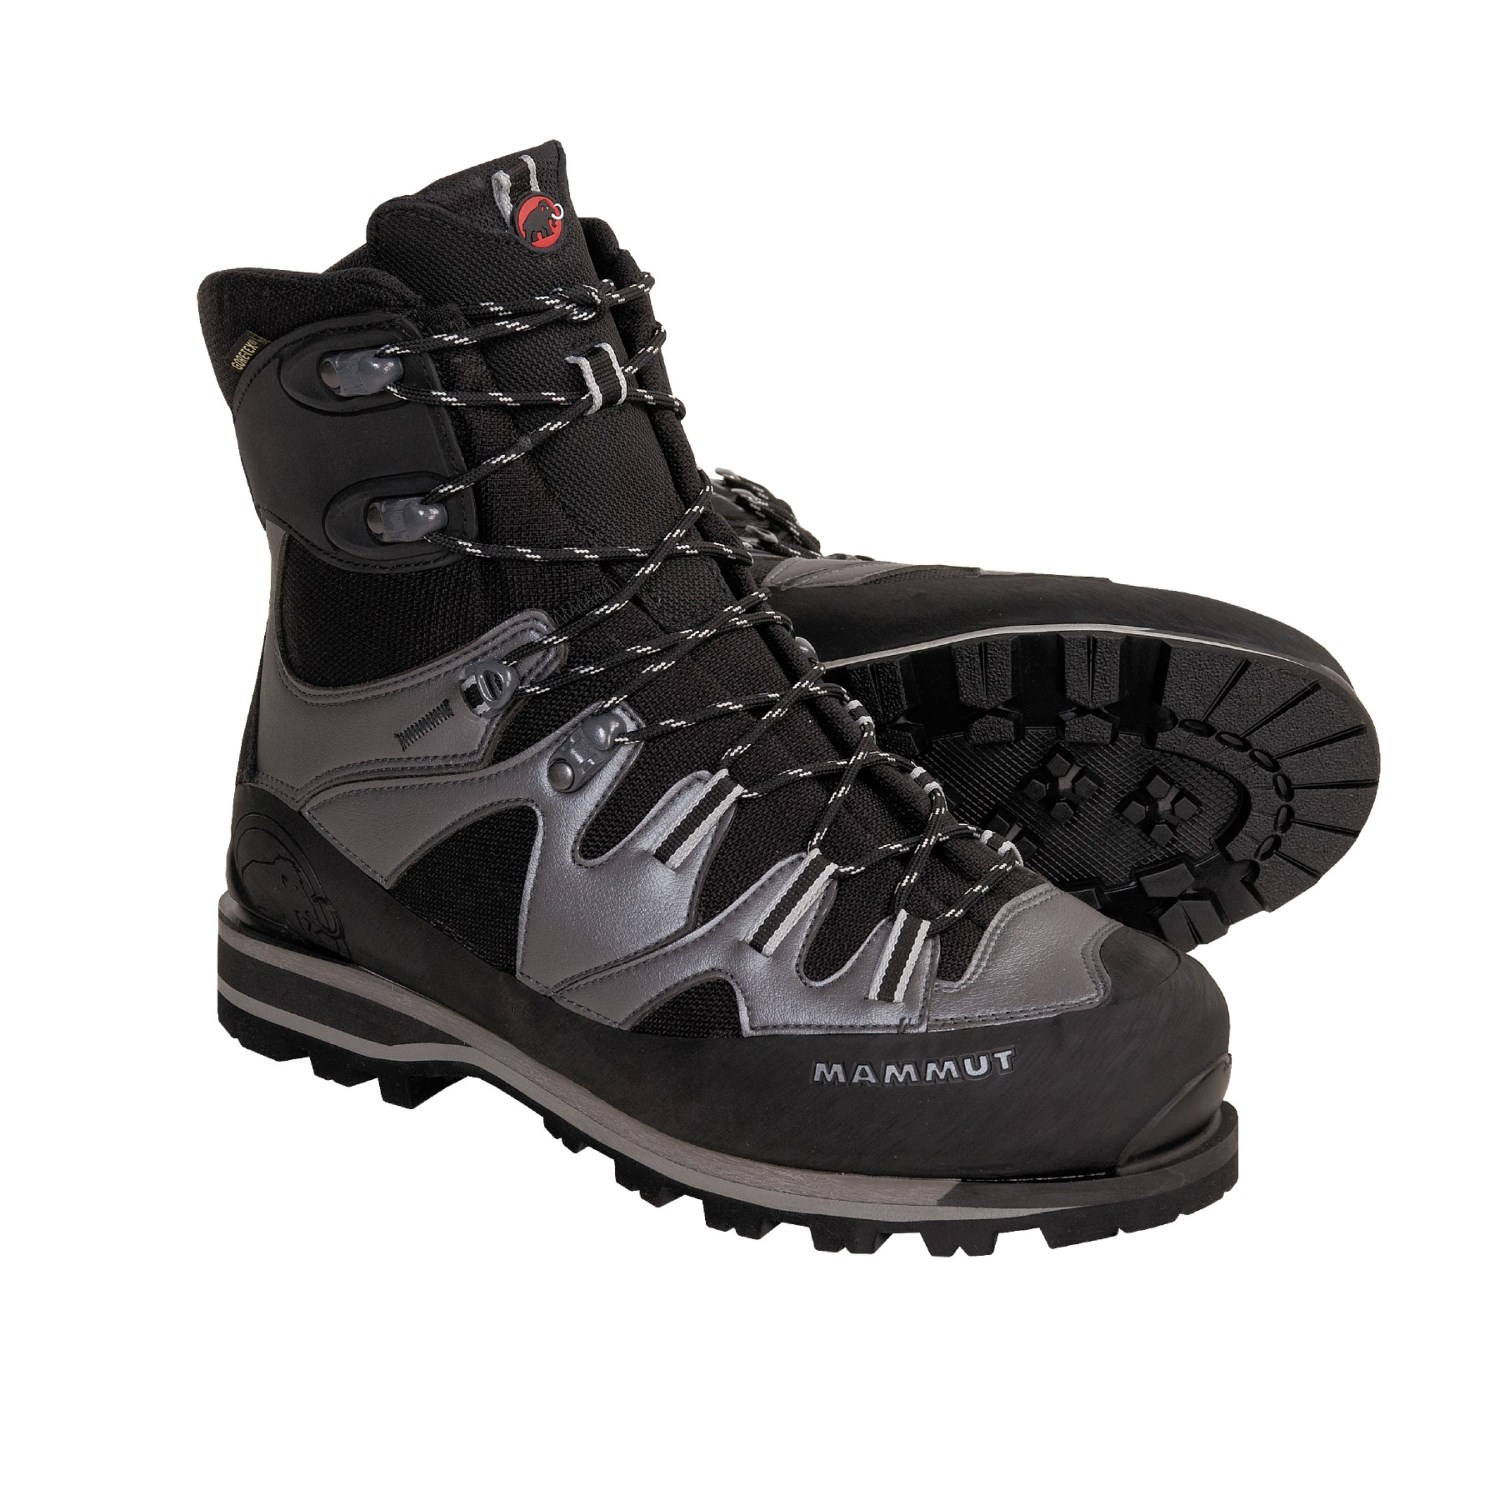 mammut marconi gore tex mountaineering boots for men. Black Bedroom Furniture Sets. Home Design Ideas